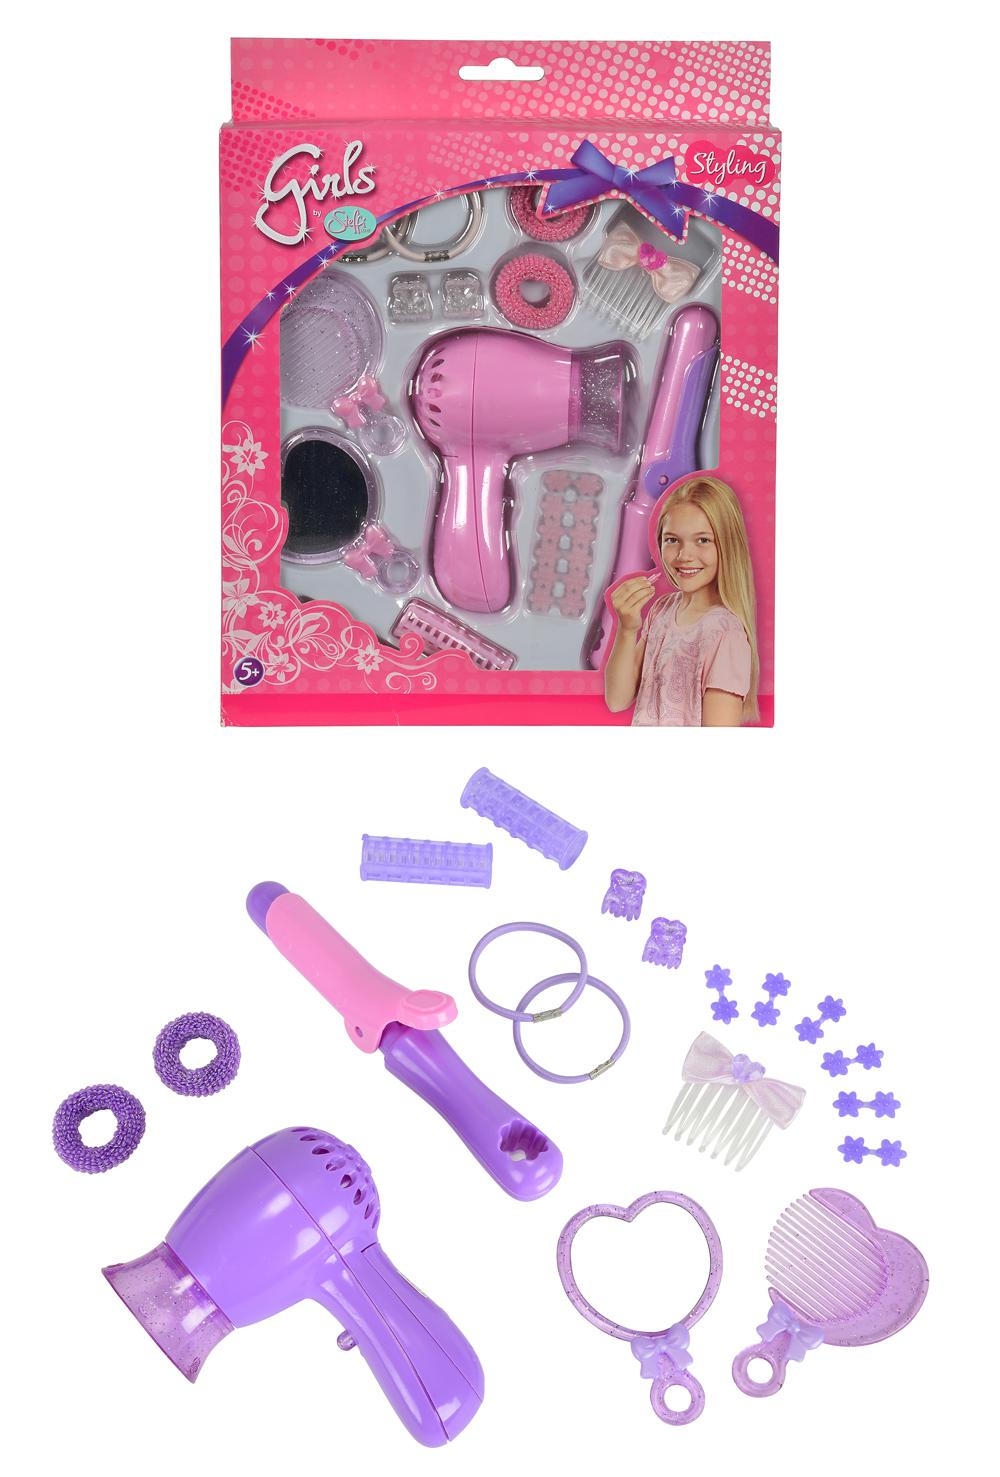 Simba - Styling 19 pieces set 2 styles assorted